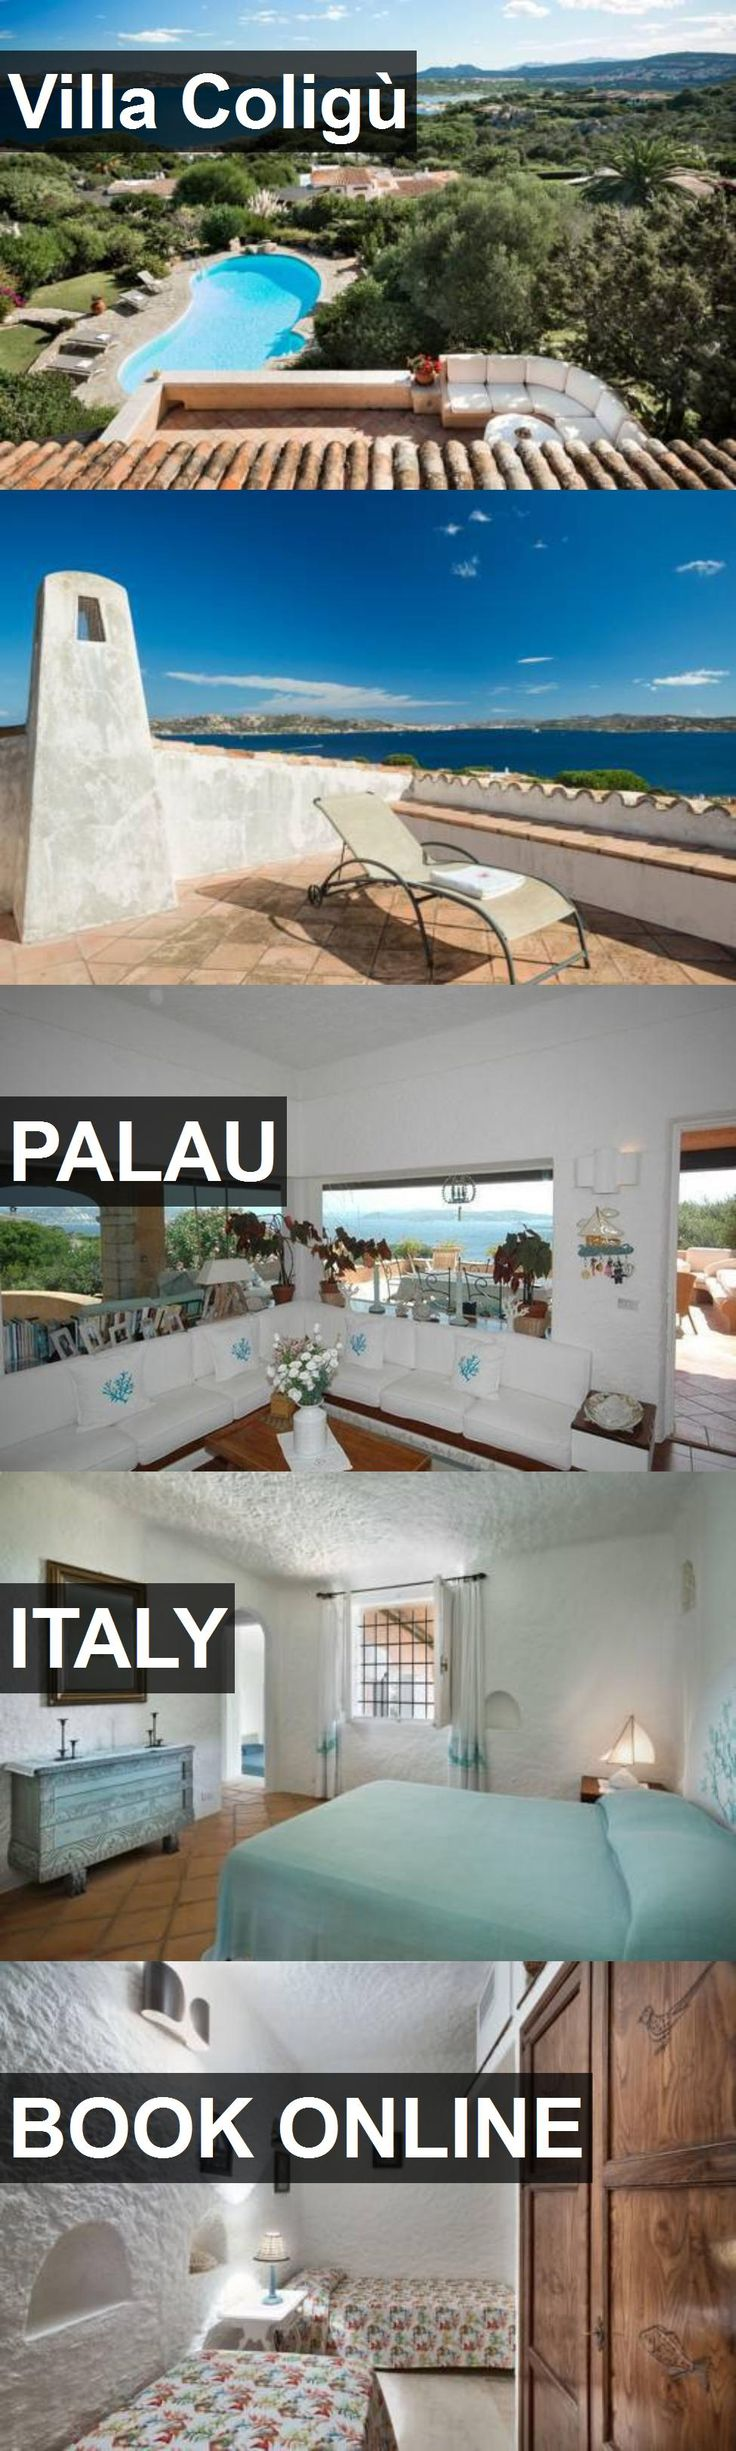 Hotel Villa Coligù in Palau, Italy. For more information, photos, reviews and best prices please follow the link. #Italy #Palau #travel #vacation #hotel